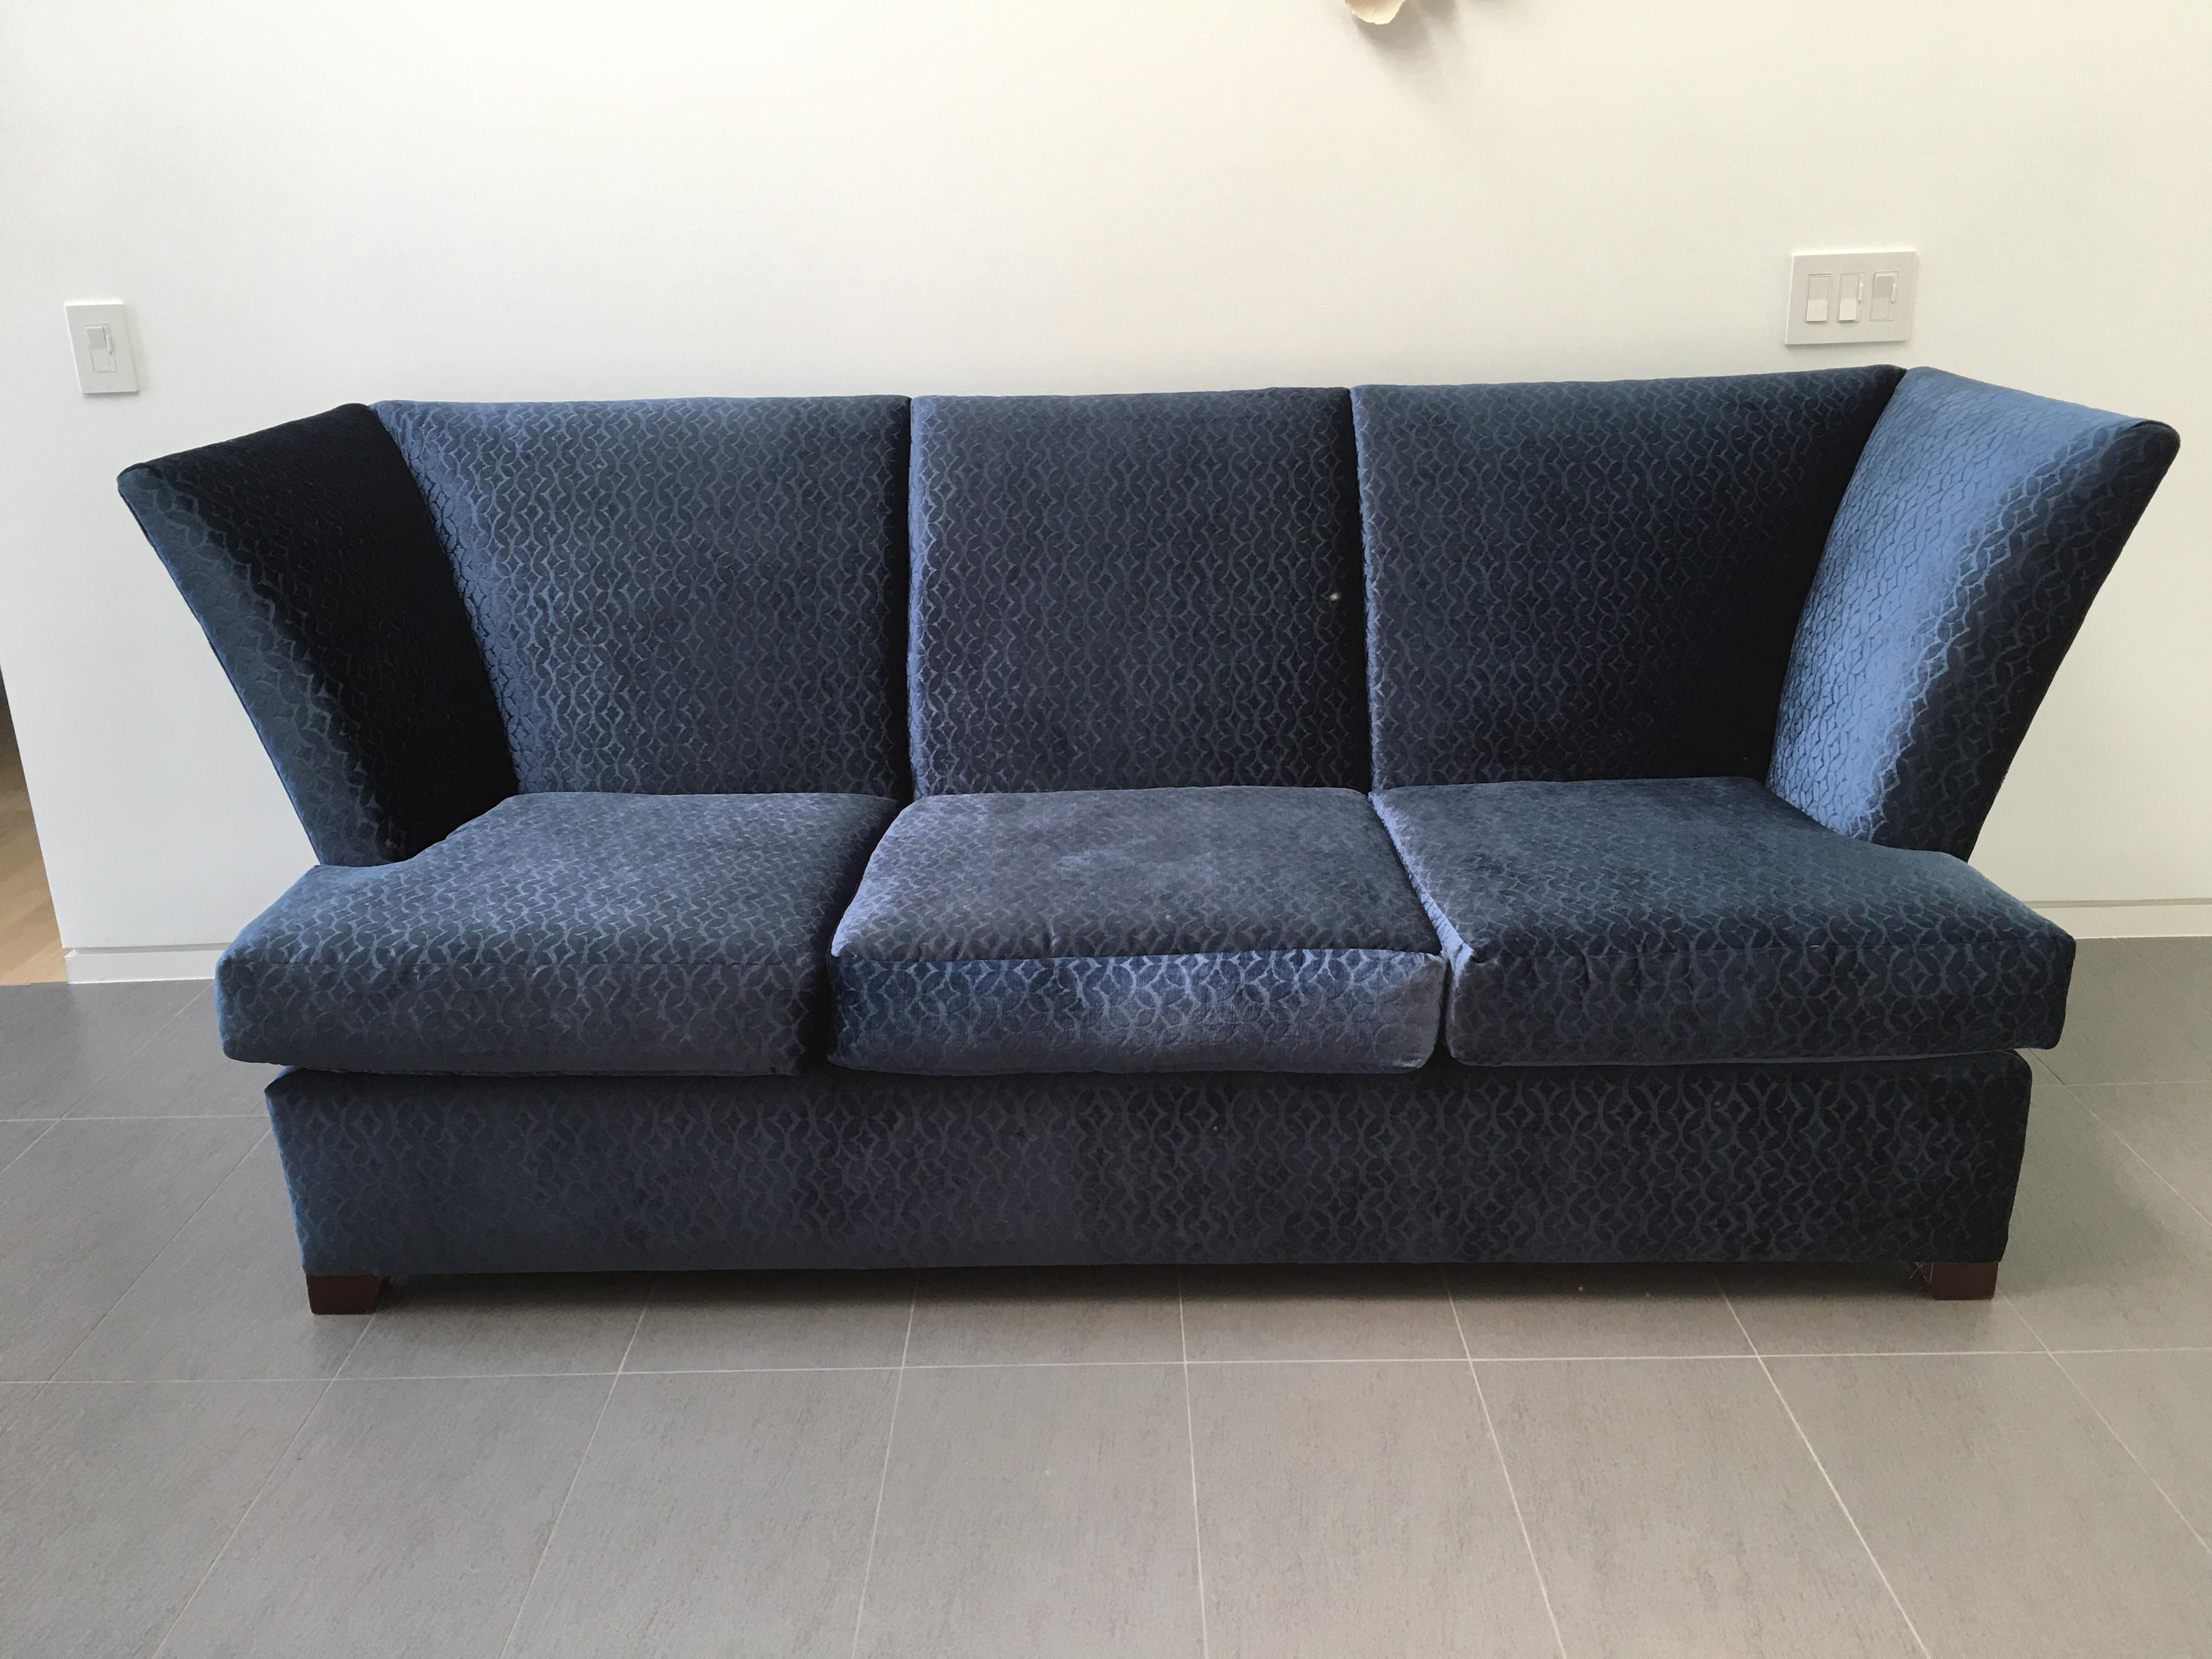 Contemporary Royal Blue Velvet Sofa By Gramercy Donghia   Image 2 Of 7